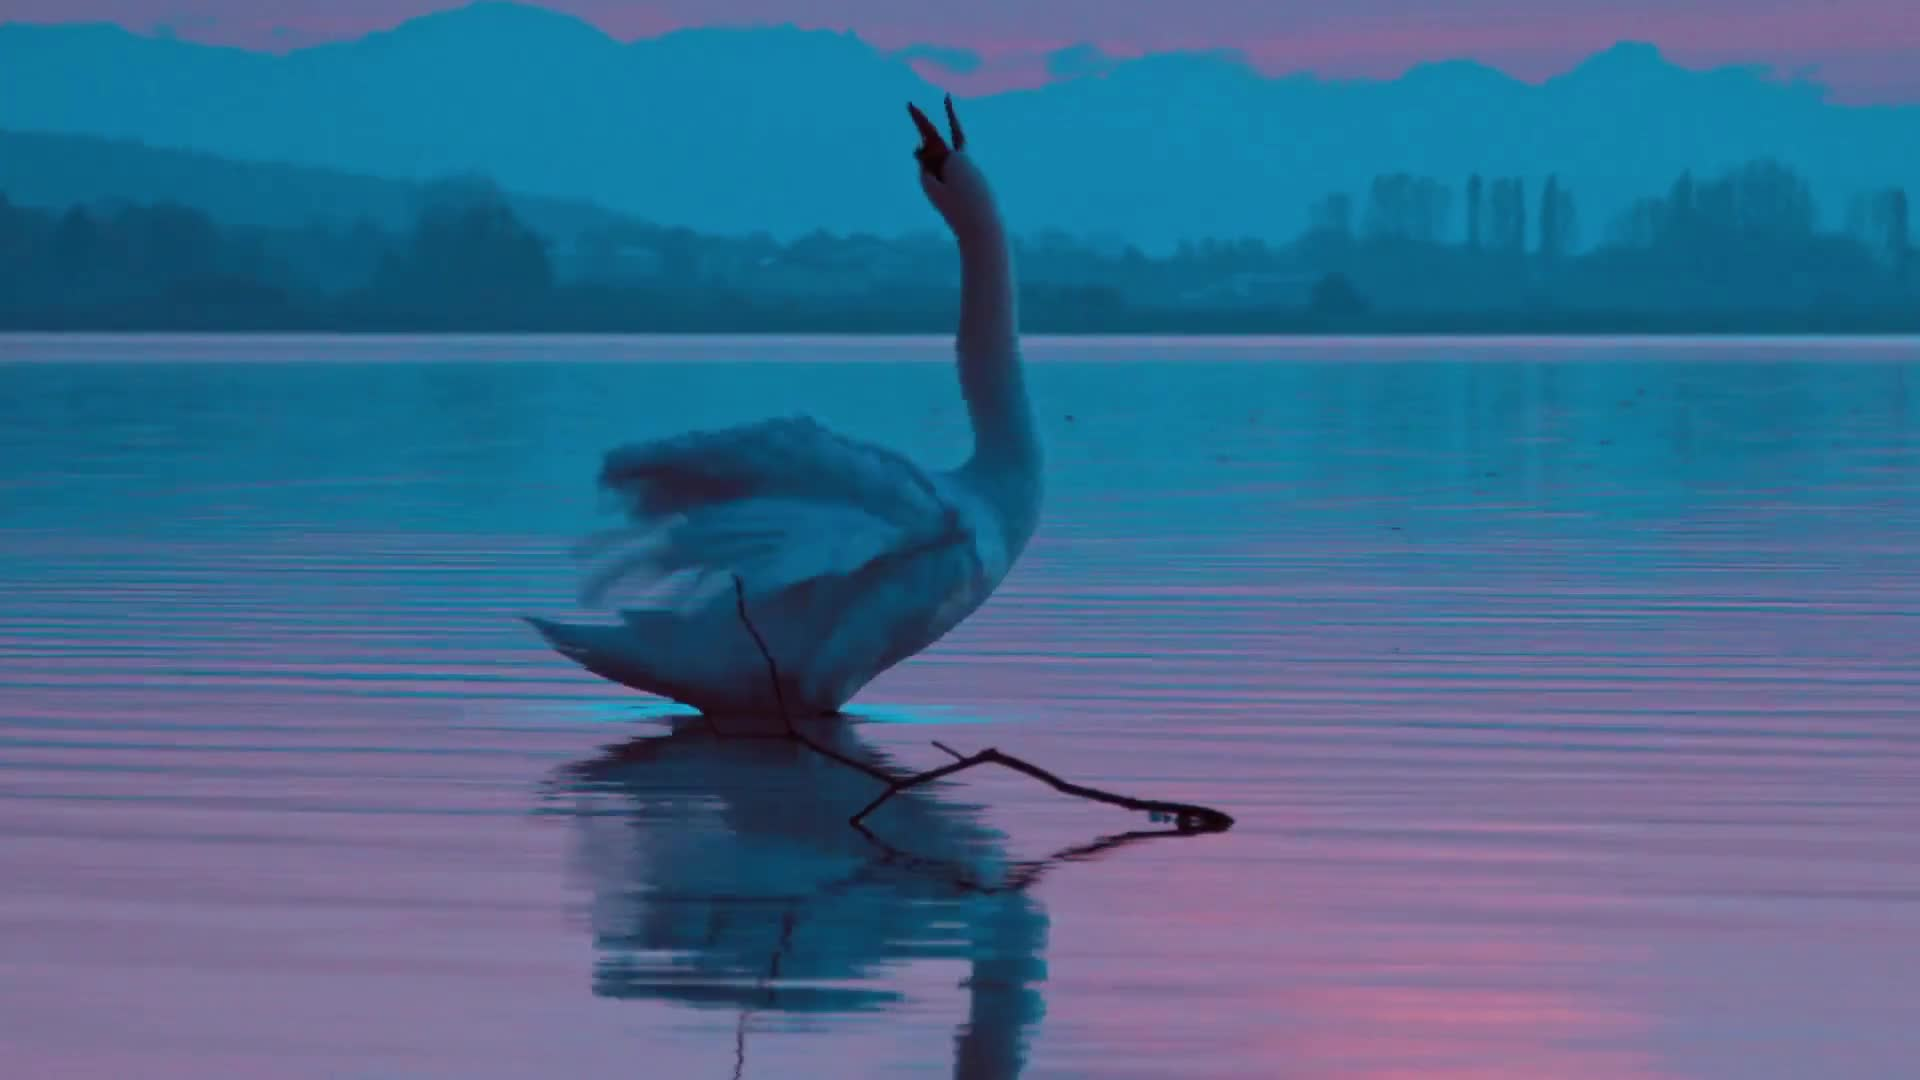 Swan bird evening twilight reflexion